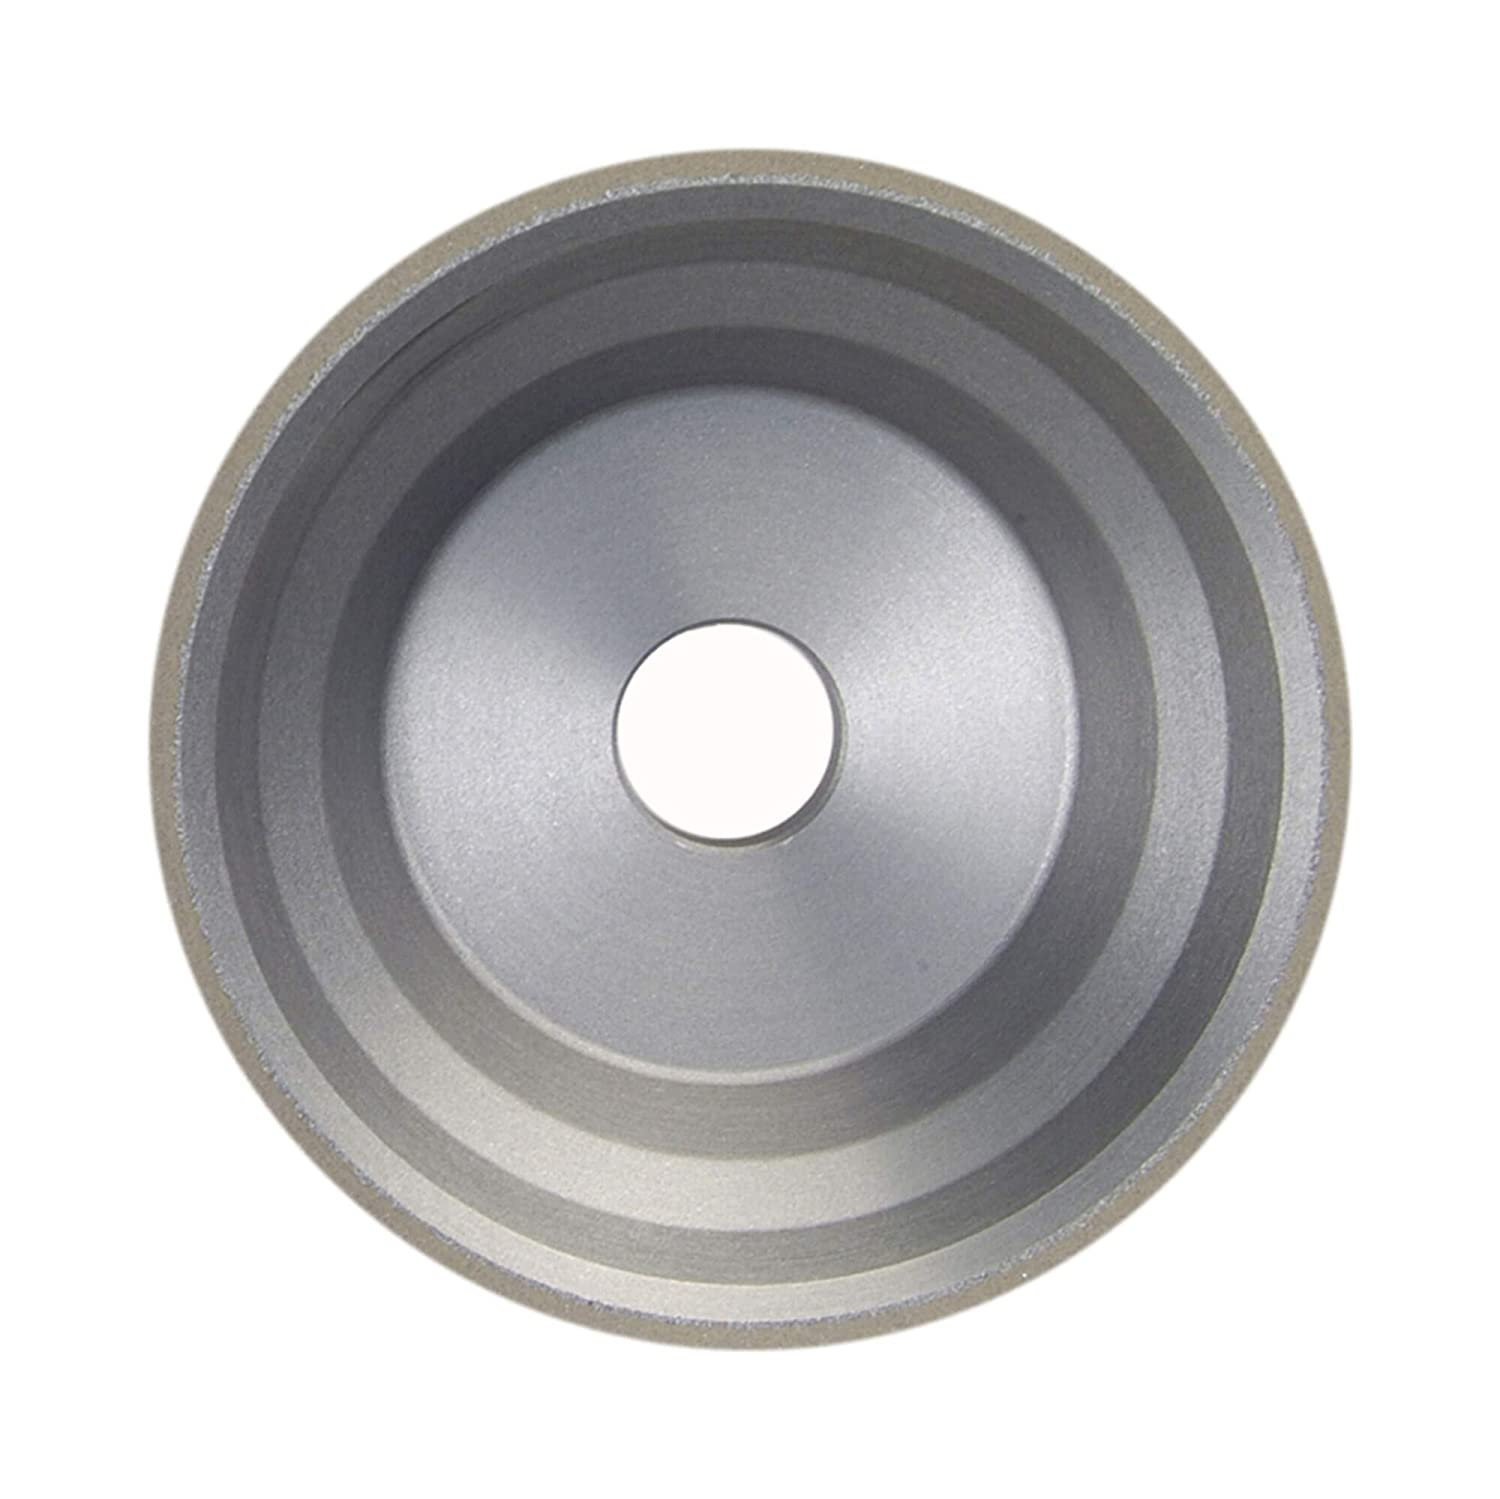 Flaring Cup  Wheel,3-3//4In,150,11V9 NORTON 69014191651